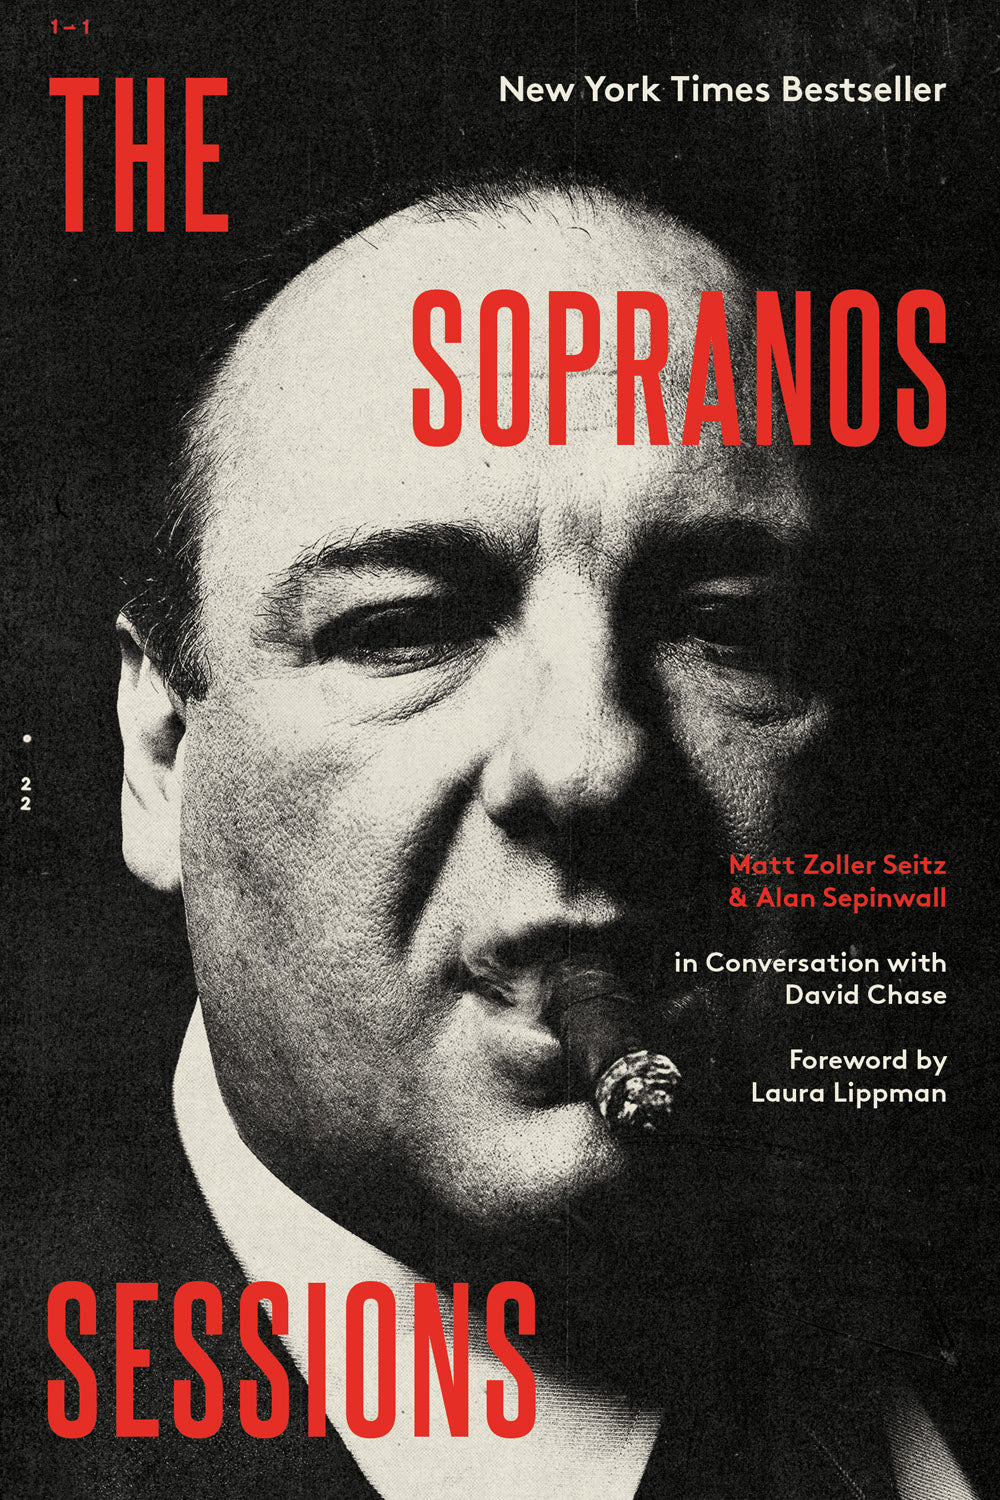 The Sopranos Sessions (Paperback, SIGNED)